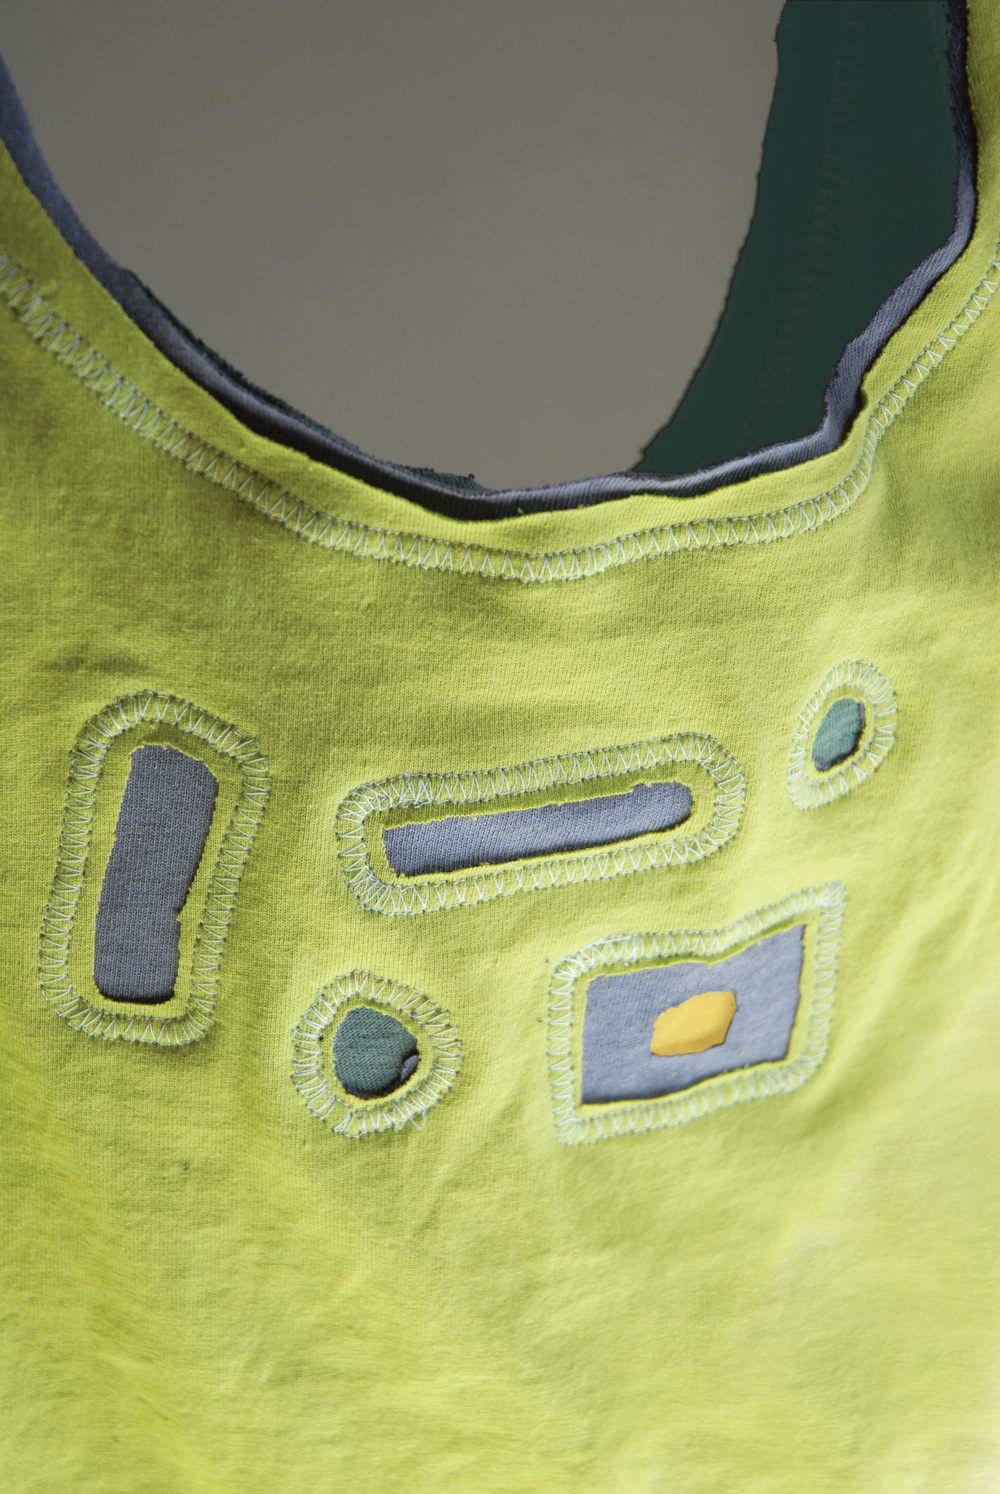 t-shirt green embellishment.jpg